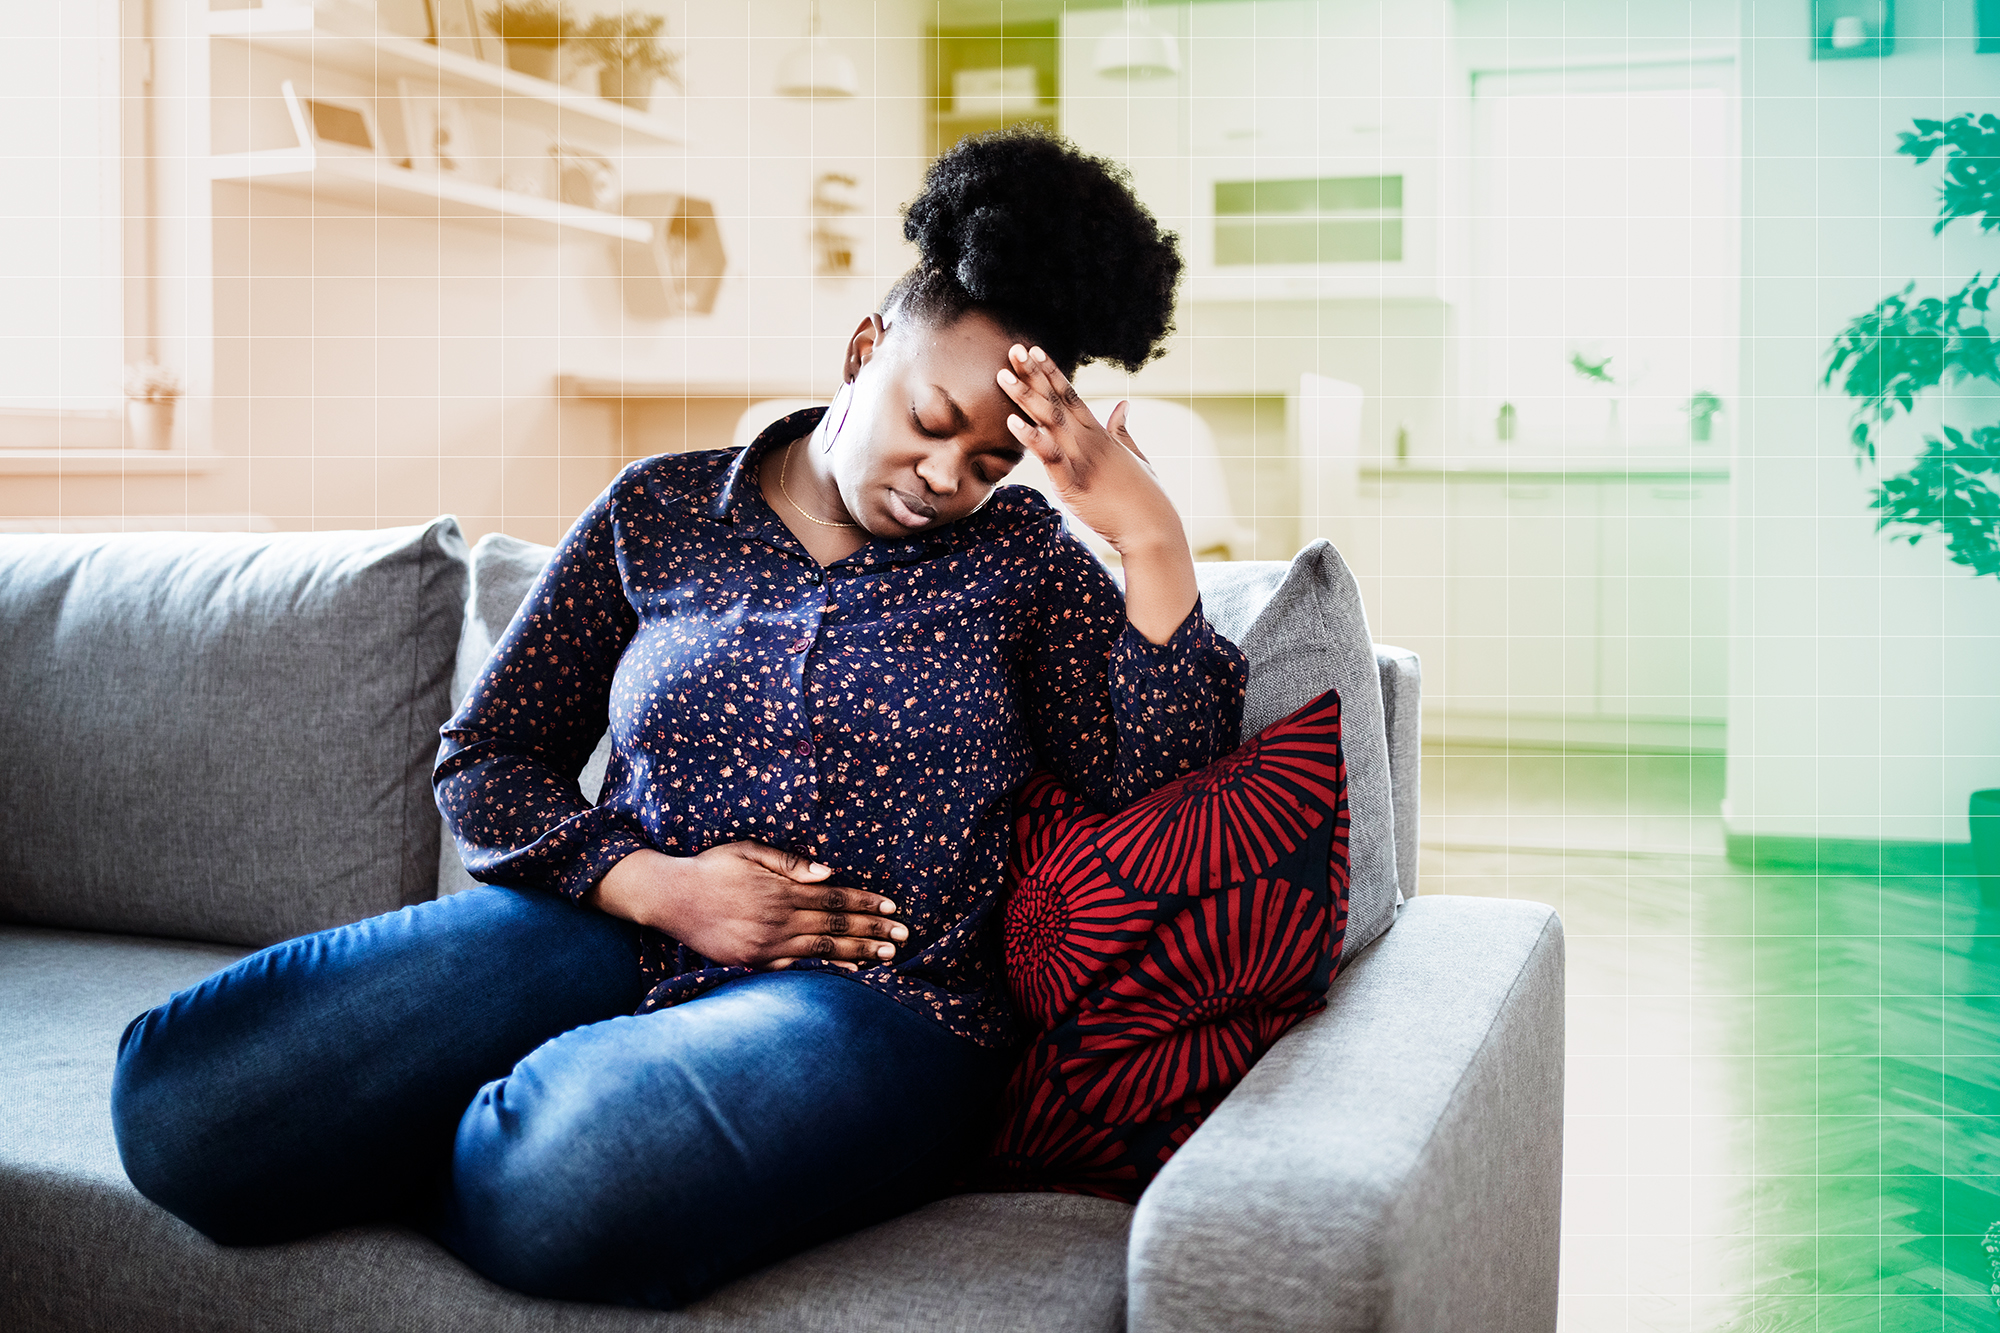 A woman sitting on a couch with a stomach ache